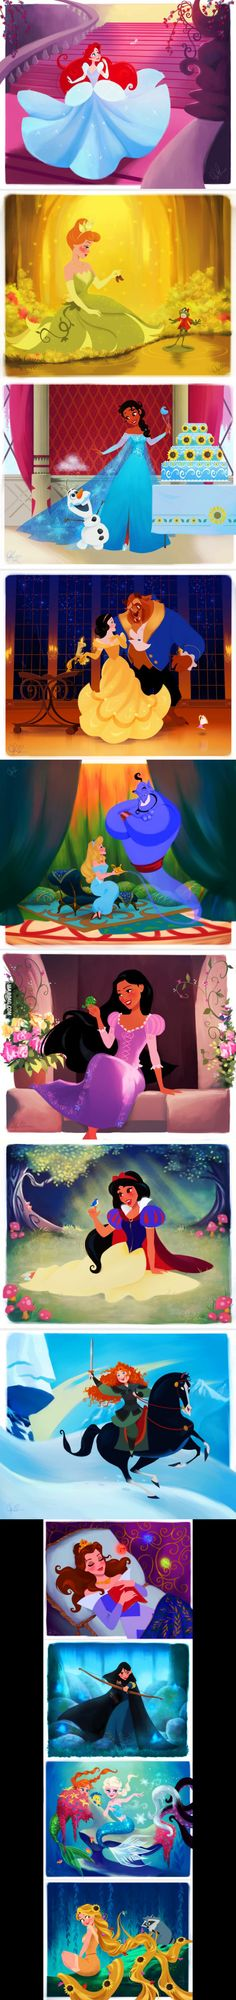 Disney Princesses dressed as other Disney Princesses - 9GAG